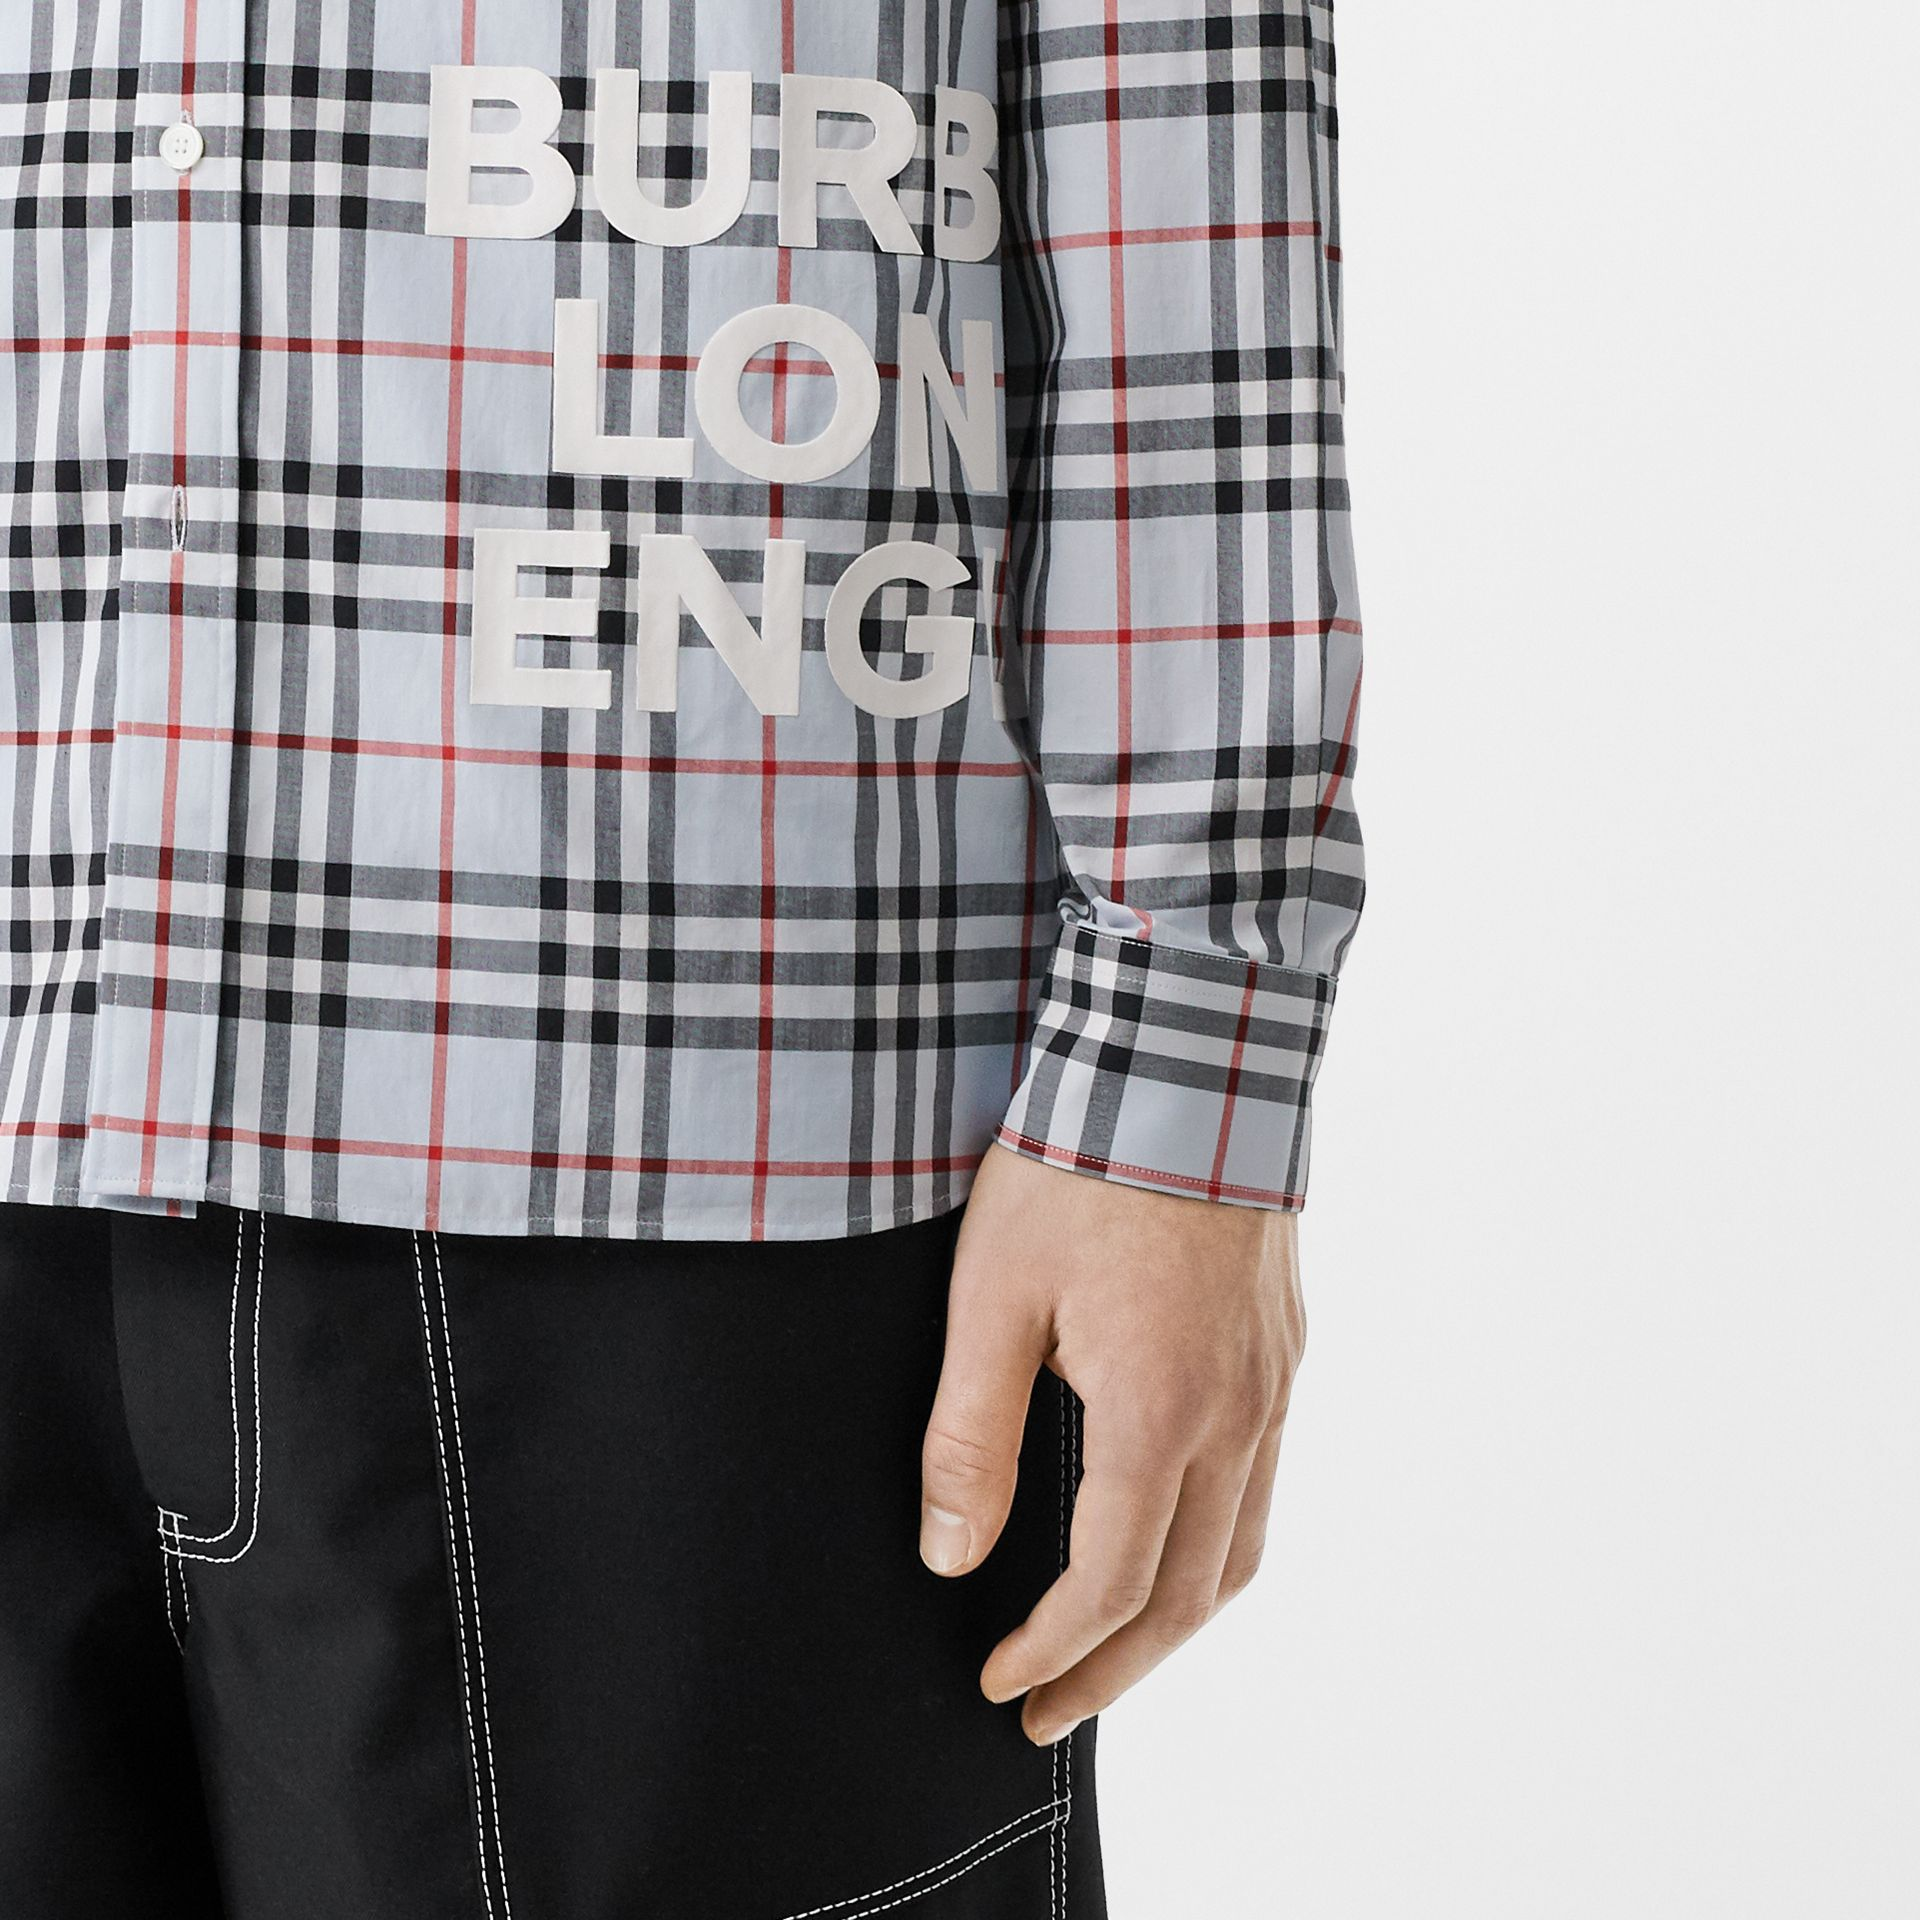 Logo Print Check Cotton Oversized Shirt in Pale Blue - Men | Burberry Hong Kong S.A.R - gallery image 1